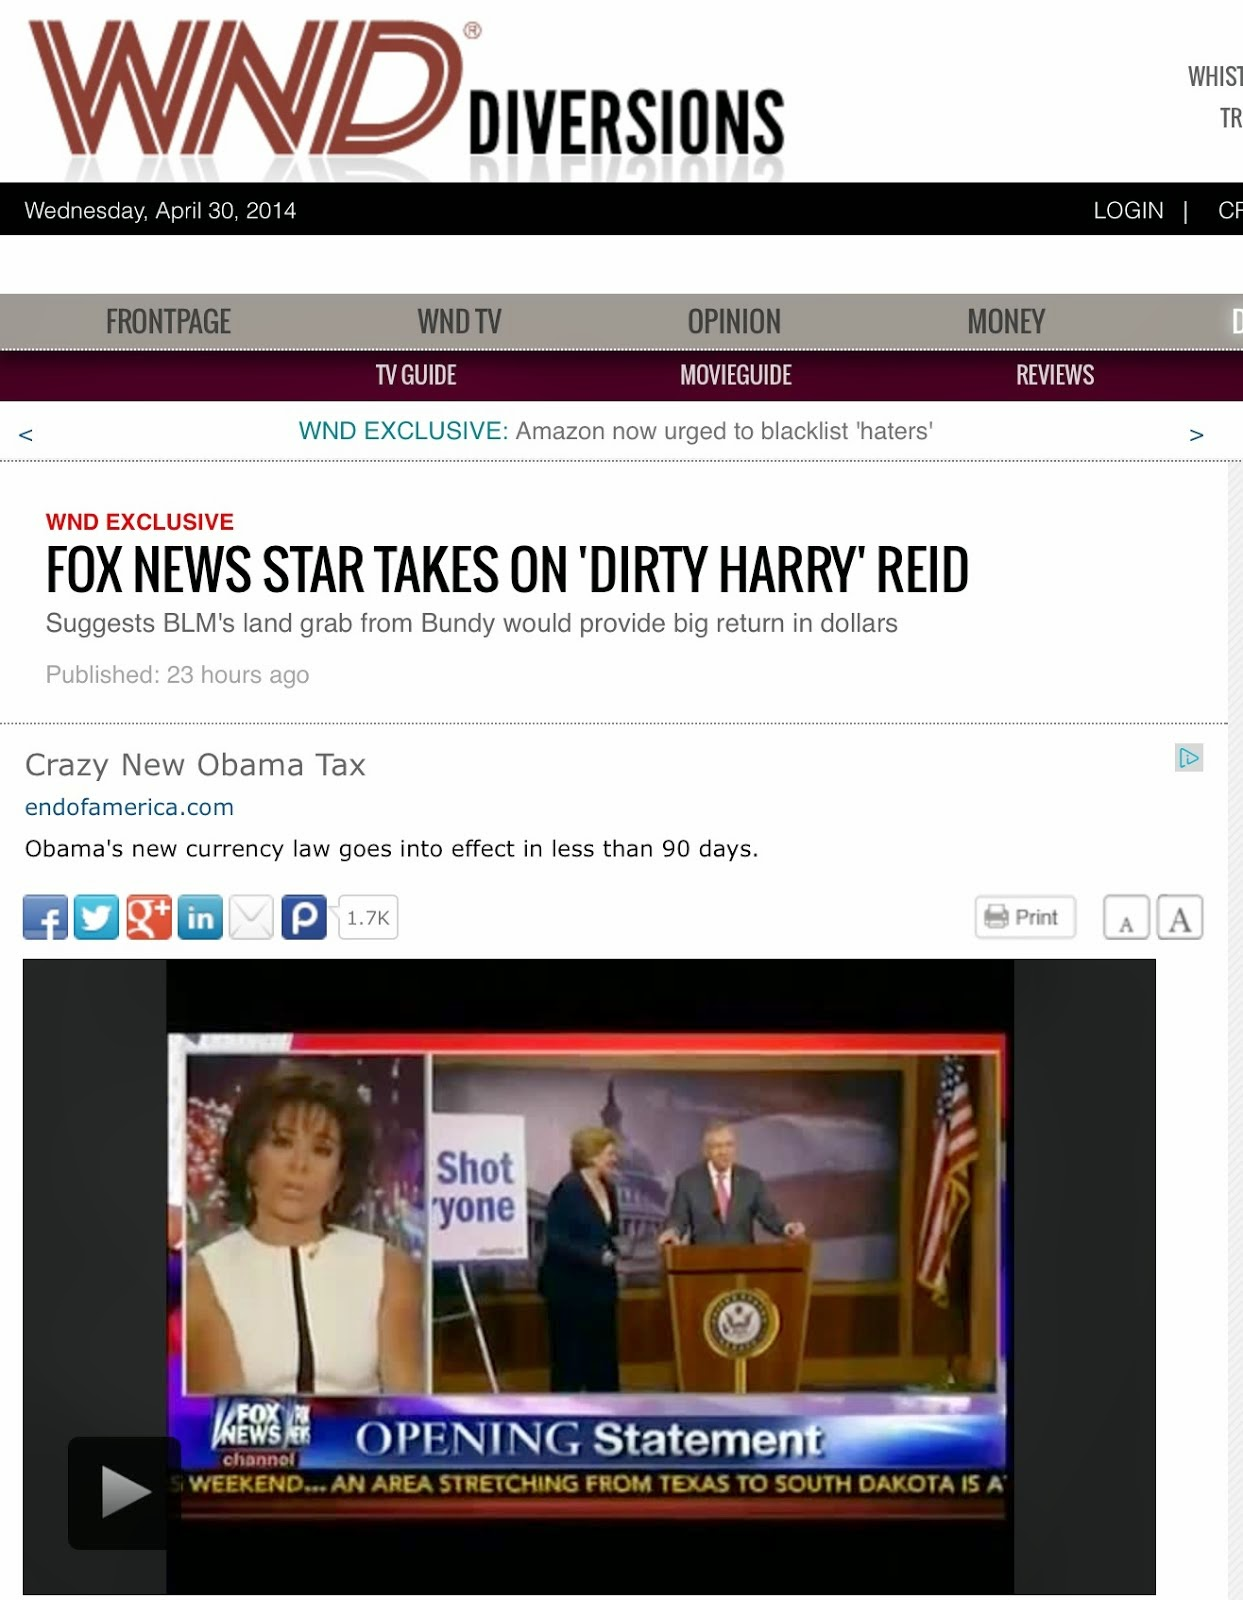 April 30, 2014: Fox News star takes on 'Dirty Harry' Reid